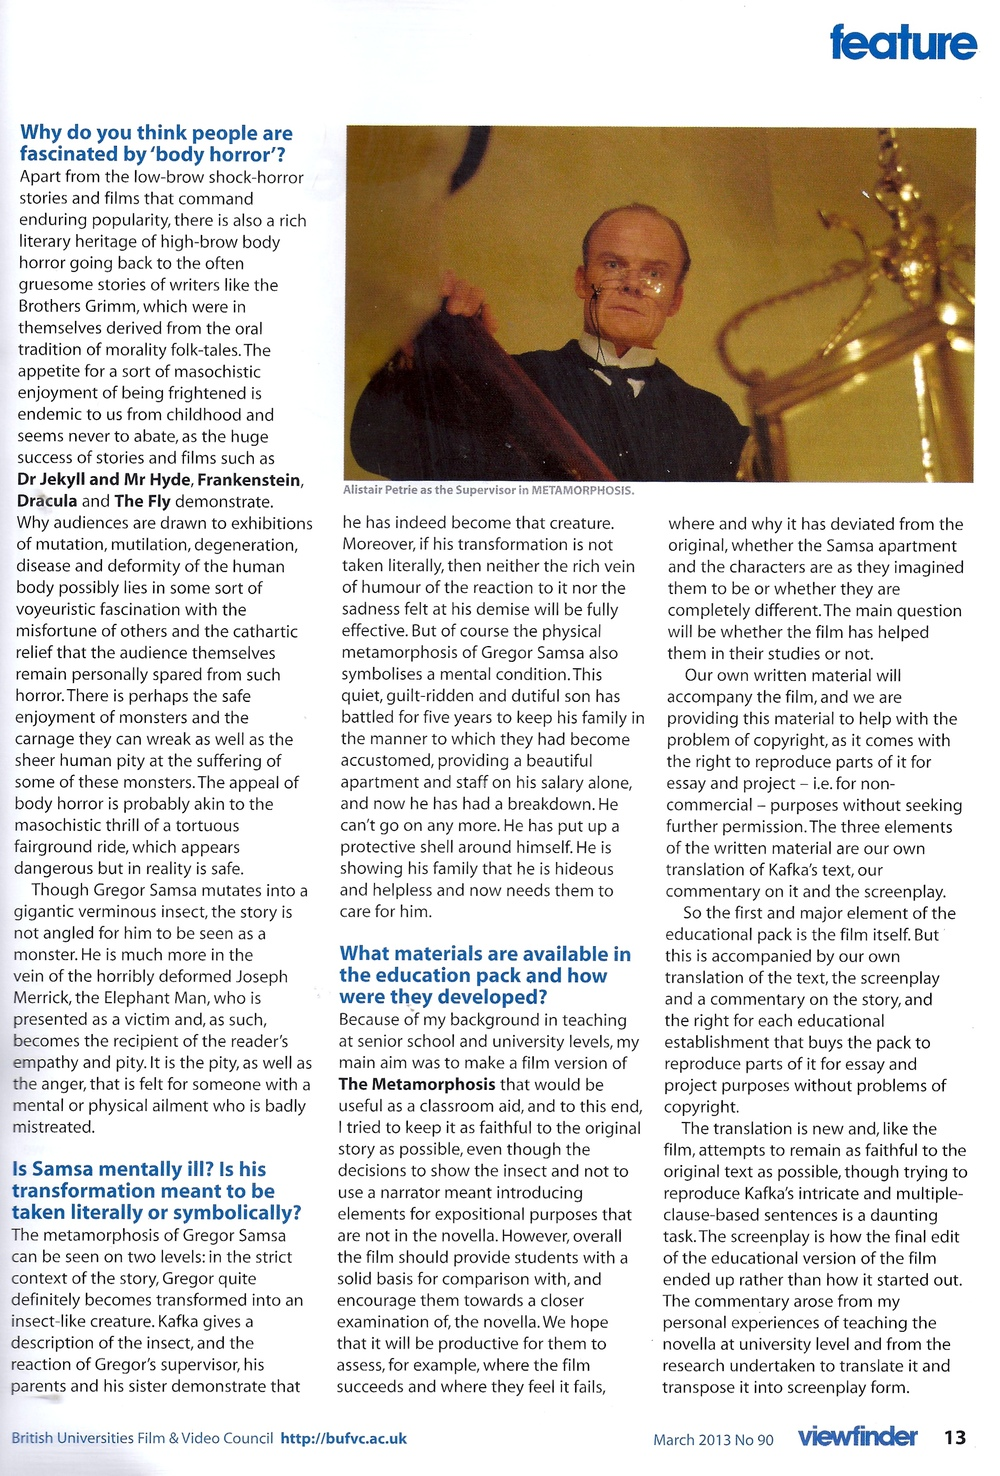 Viewfinder Issue 90, page 2, March 2013